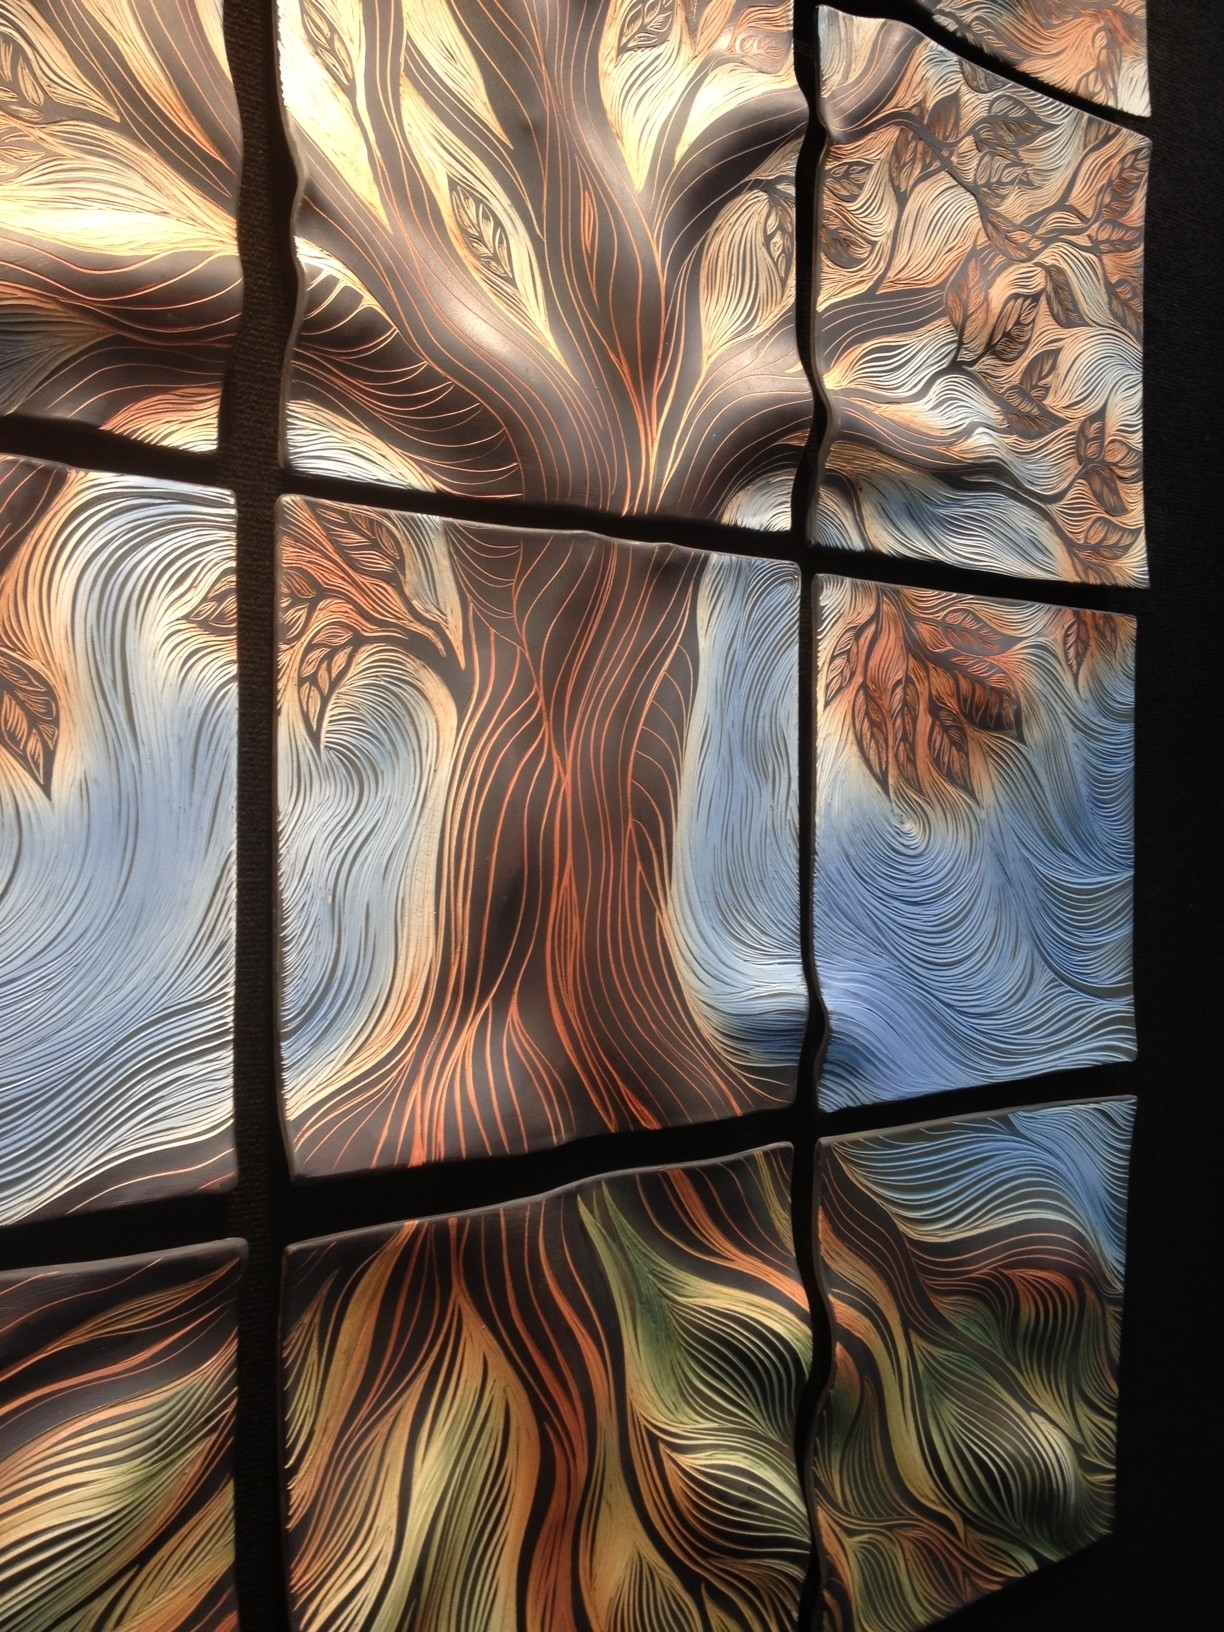 Most Current 3D Glass Wall Art In Natalie Blake Studios' Hand Carved 3D Ceramic Tile Wall Art (View 9 of 15)